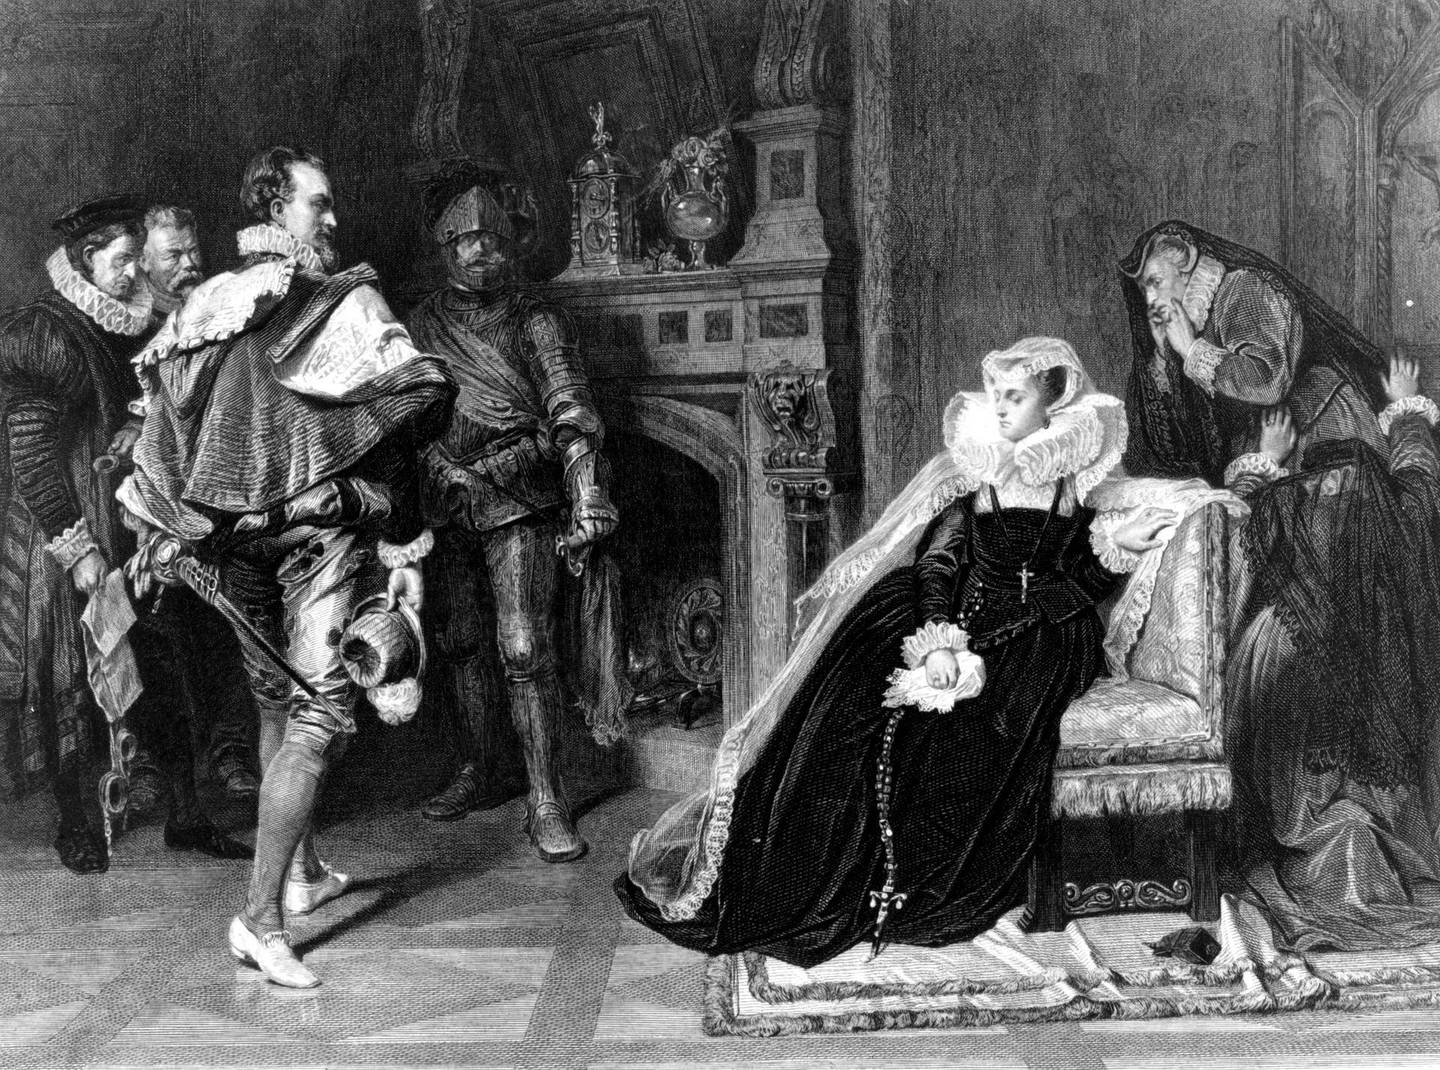 1st February 1587, The death warrant of Mary Queen of Scots (1542 - 1587), authorised by Elizabeth I, is brought to her in her prison. Mary had ascended to the Scottish throne when she was six days old but in 1548 was sent to France as the prospective bride of the French Da (Photo by Hulton Archive/Getty Images)